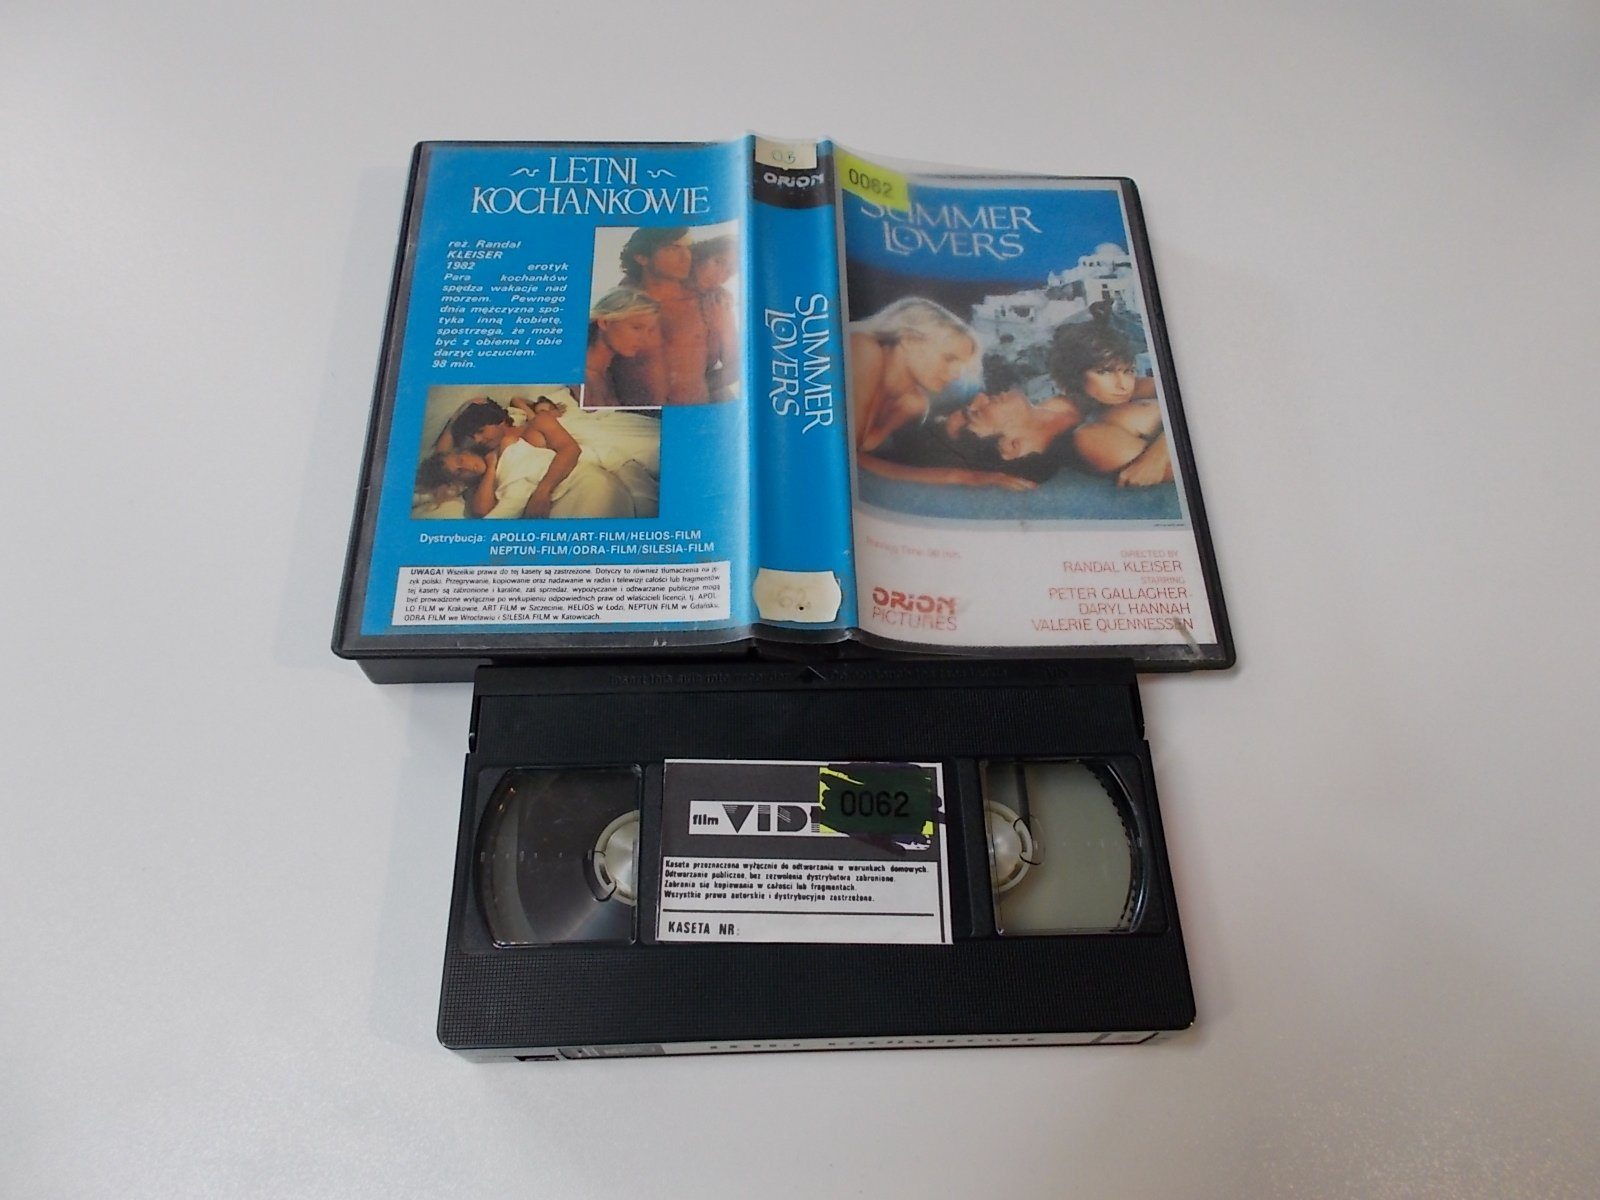 Summer Lovers - VHS Kaseta Video - Opole 1664